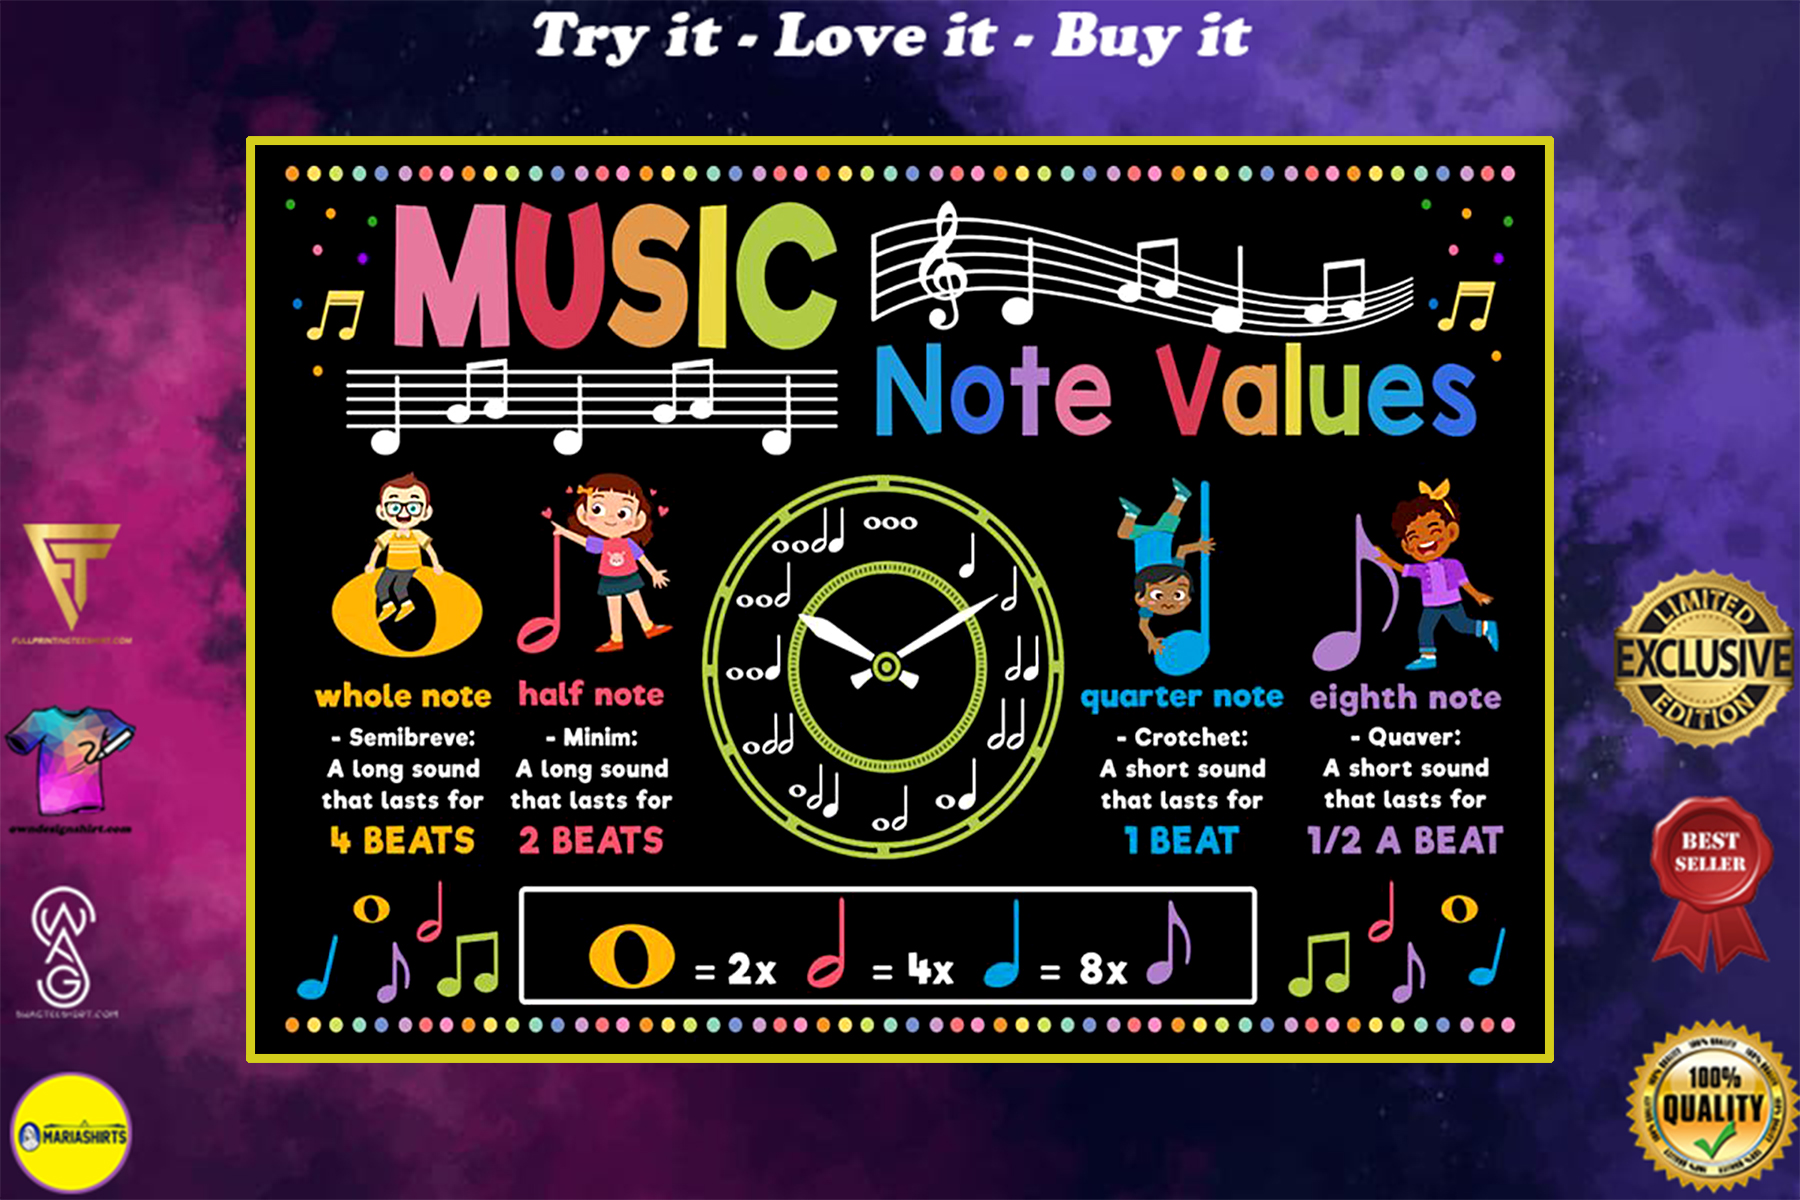 back to school music note values poster